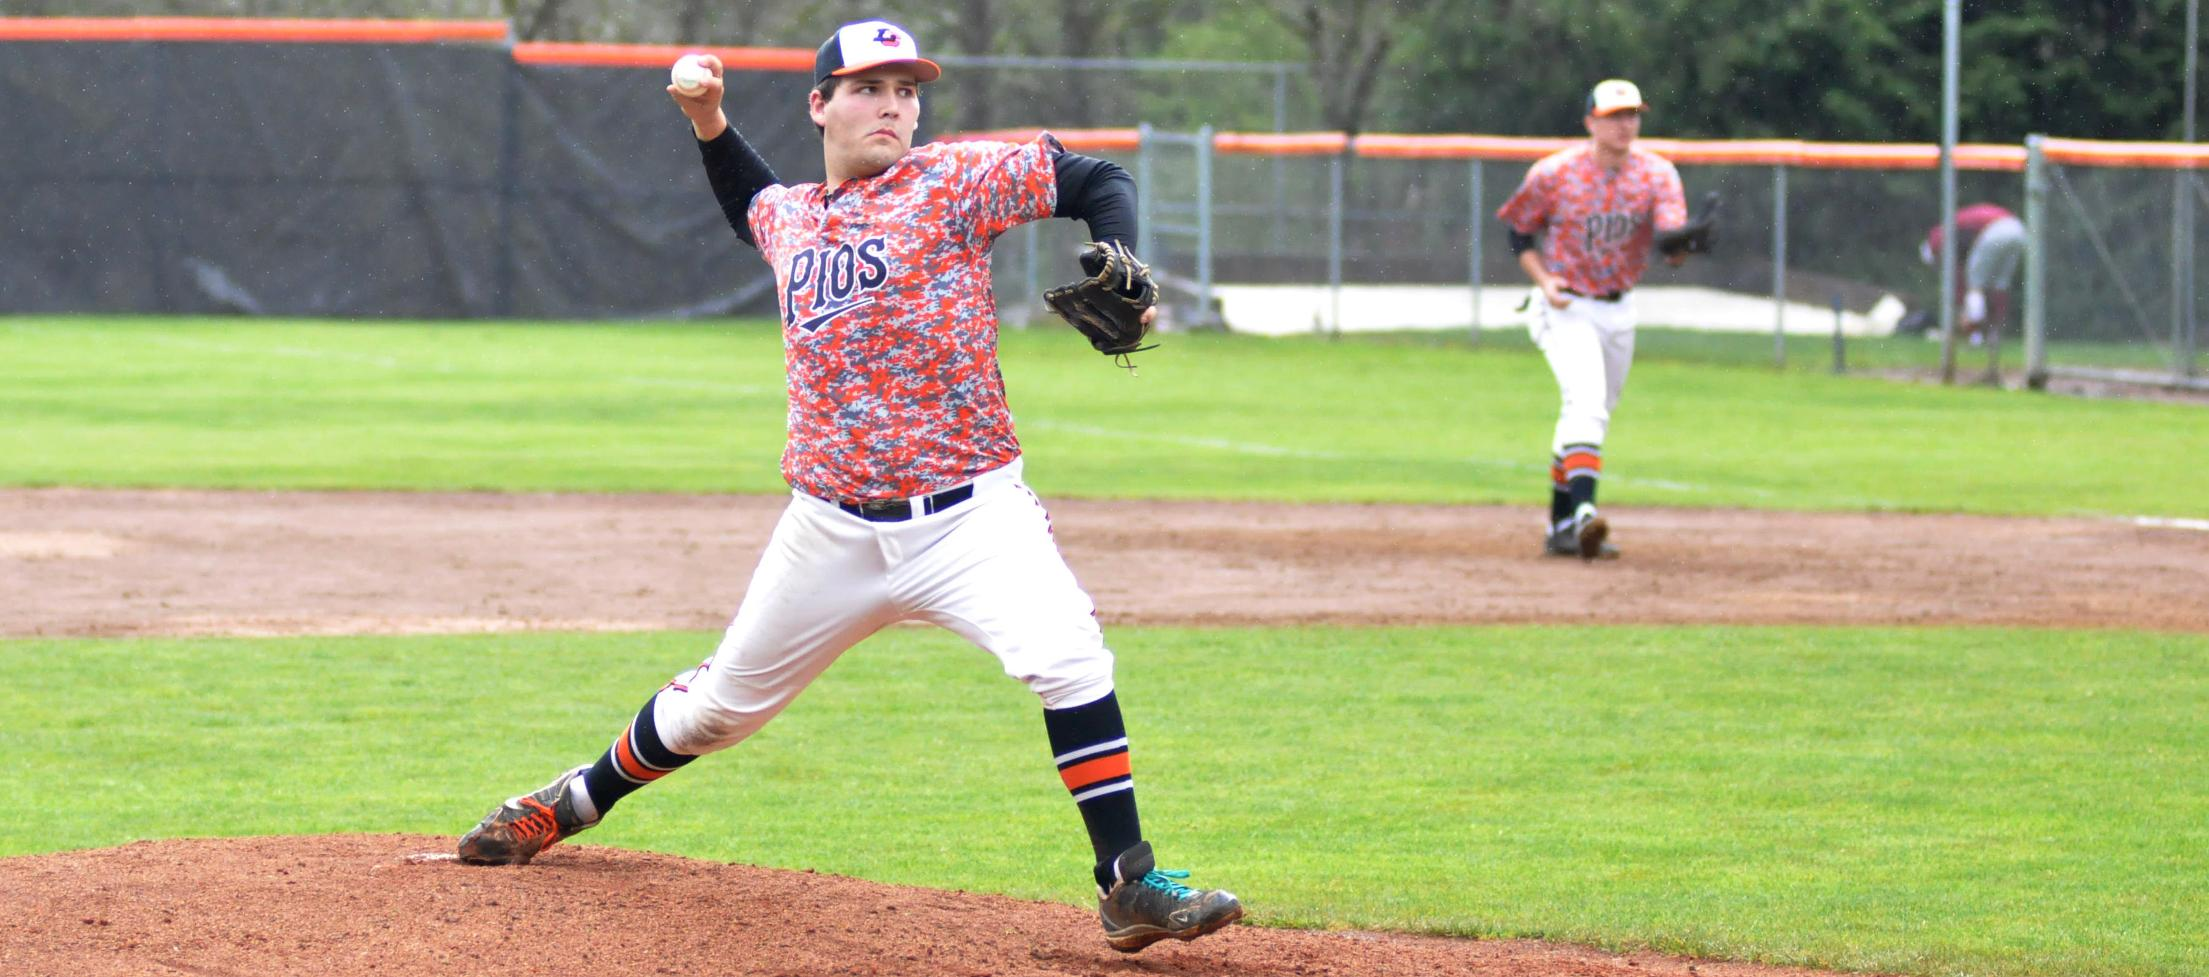 Trupin allows one earned run in final game against Willamette